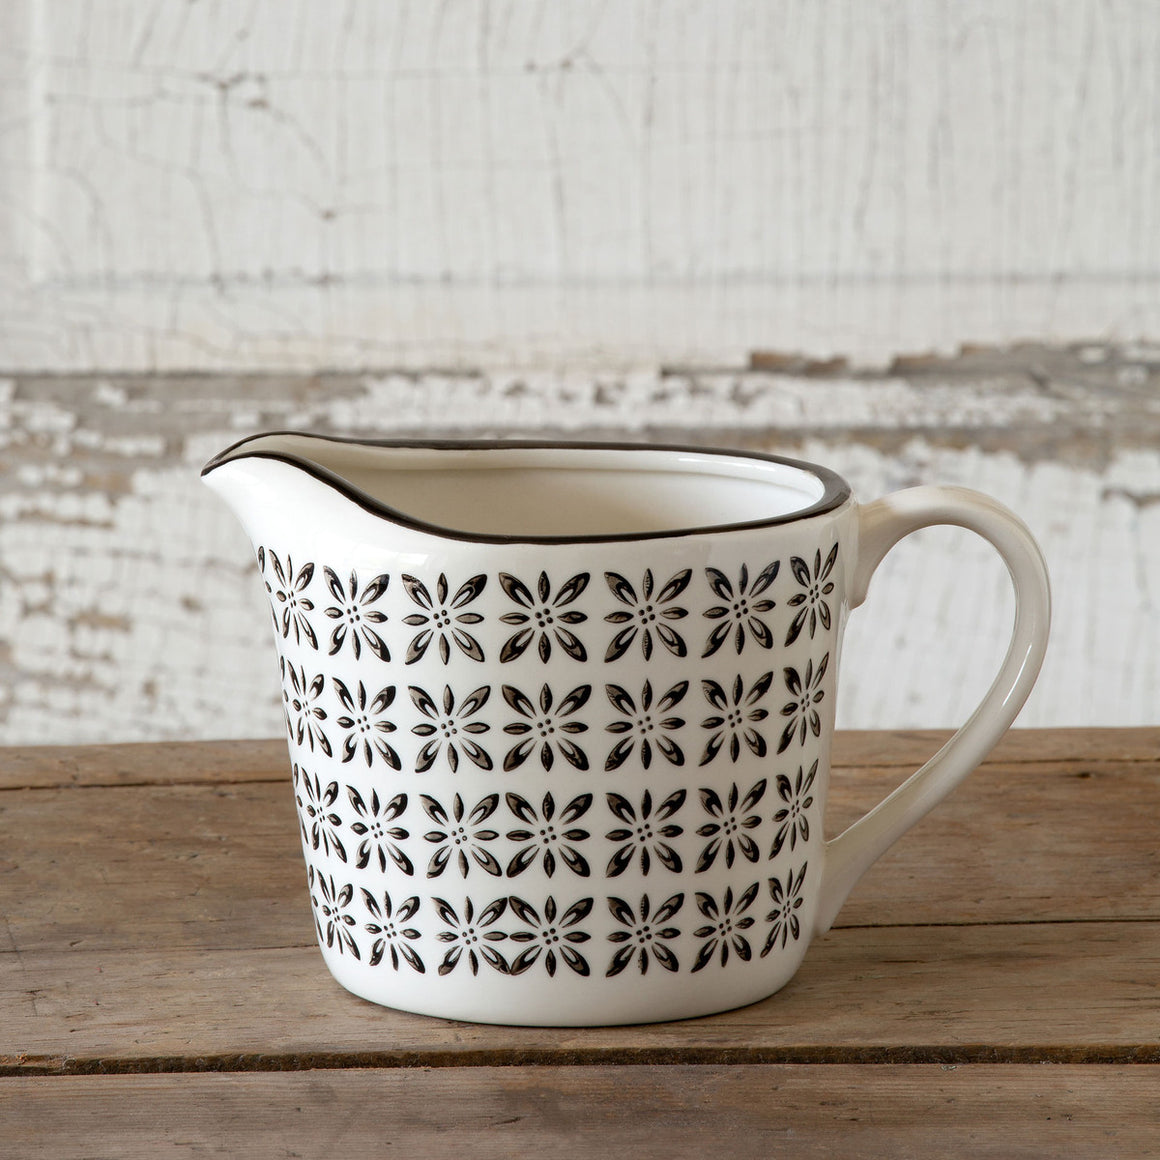 Norden Pattern Measuring Cup